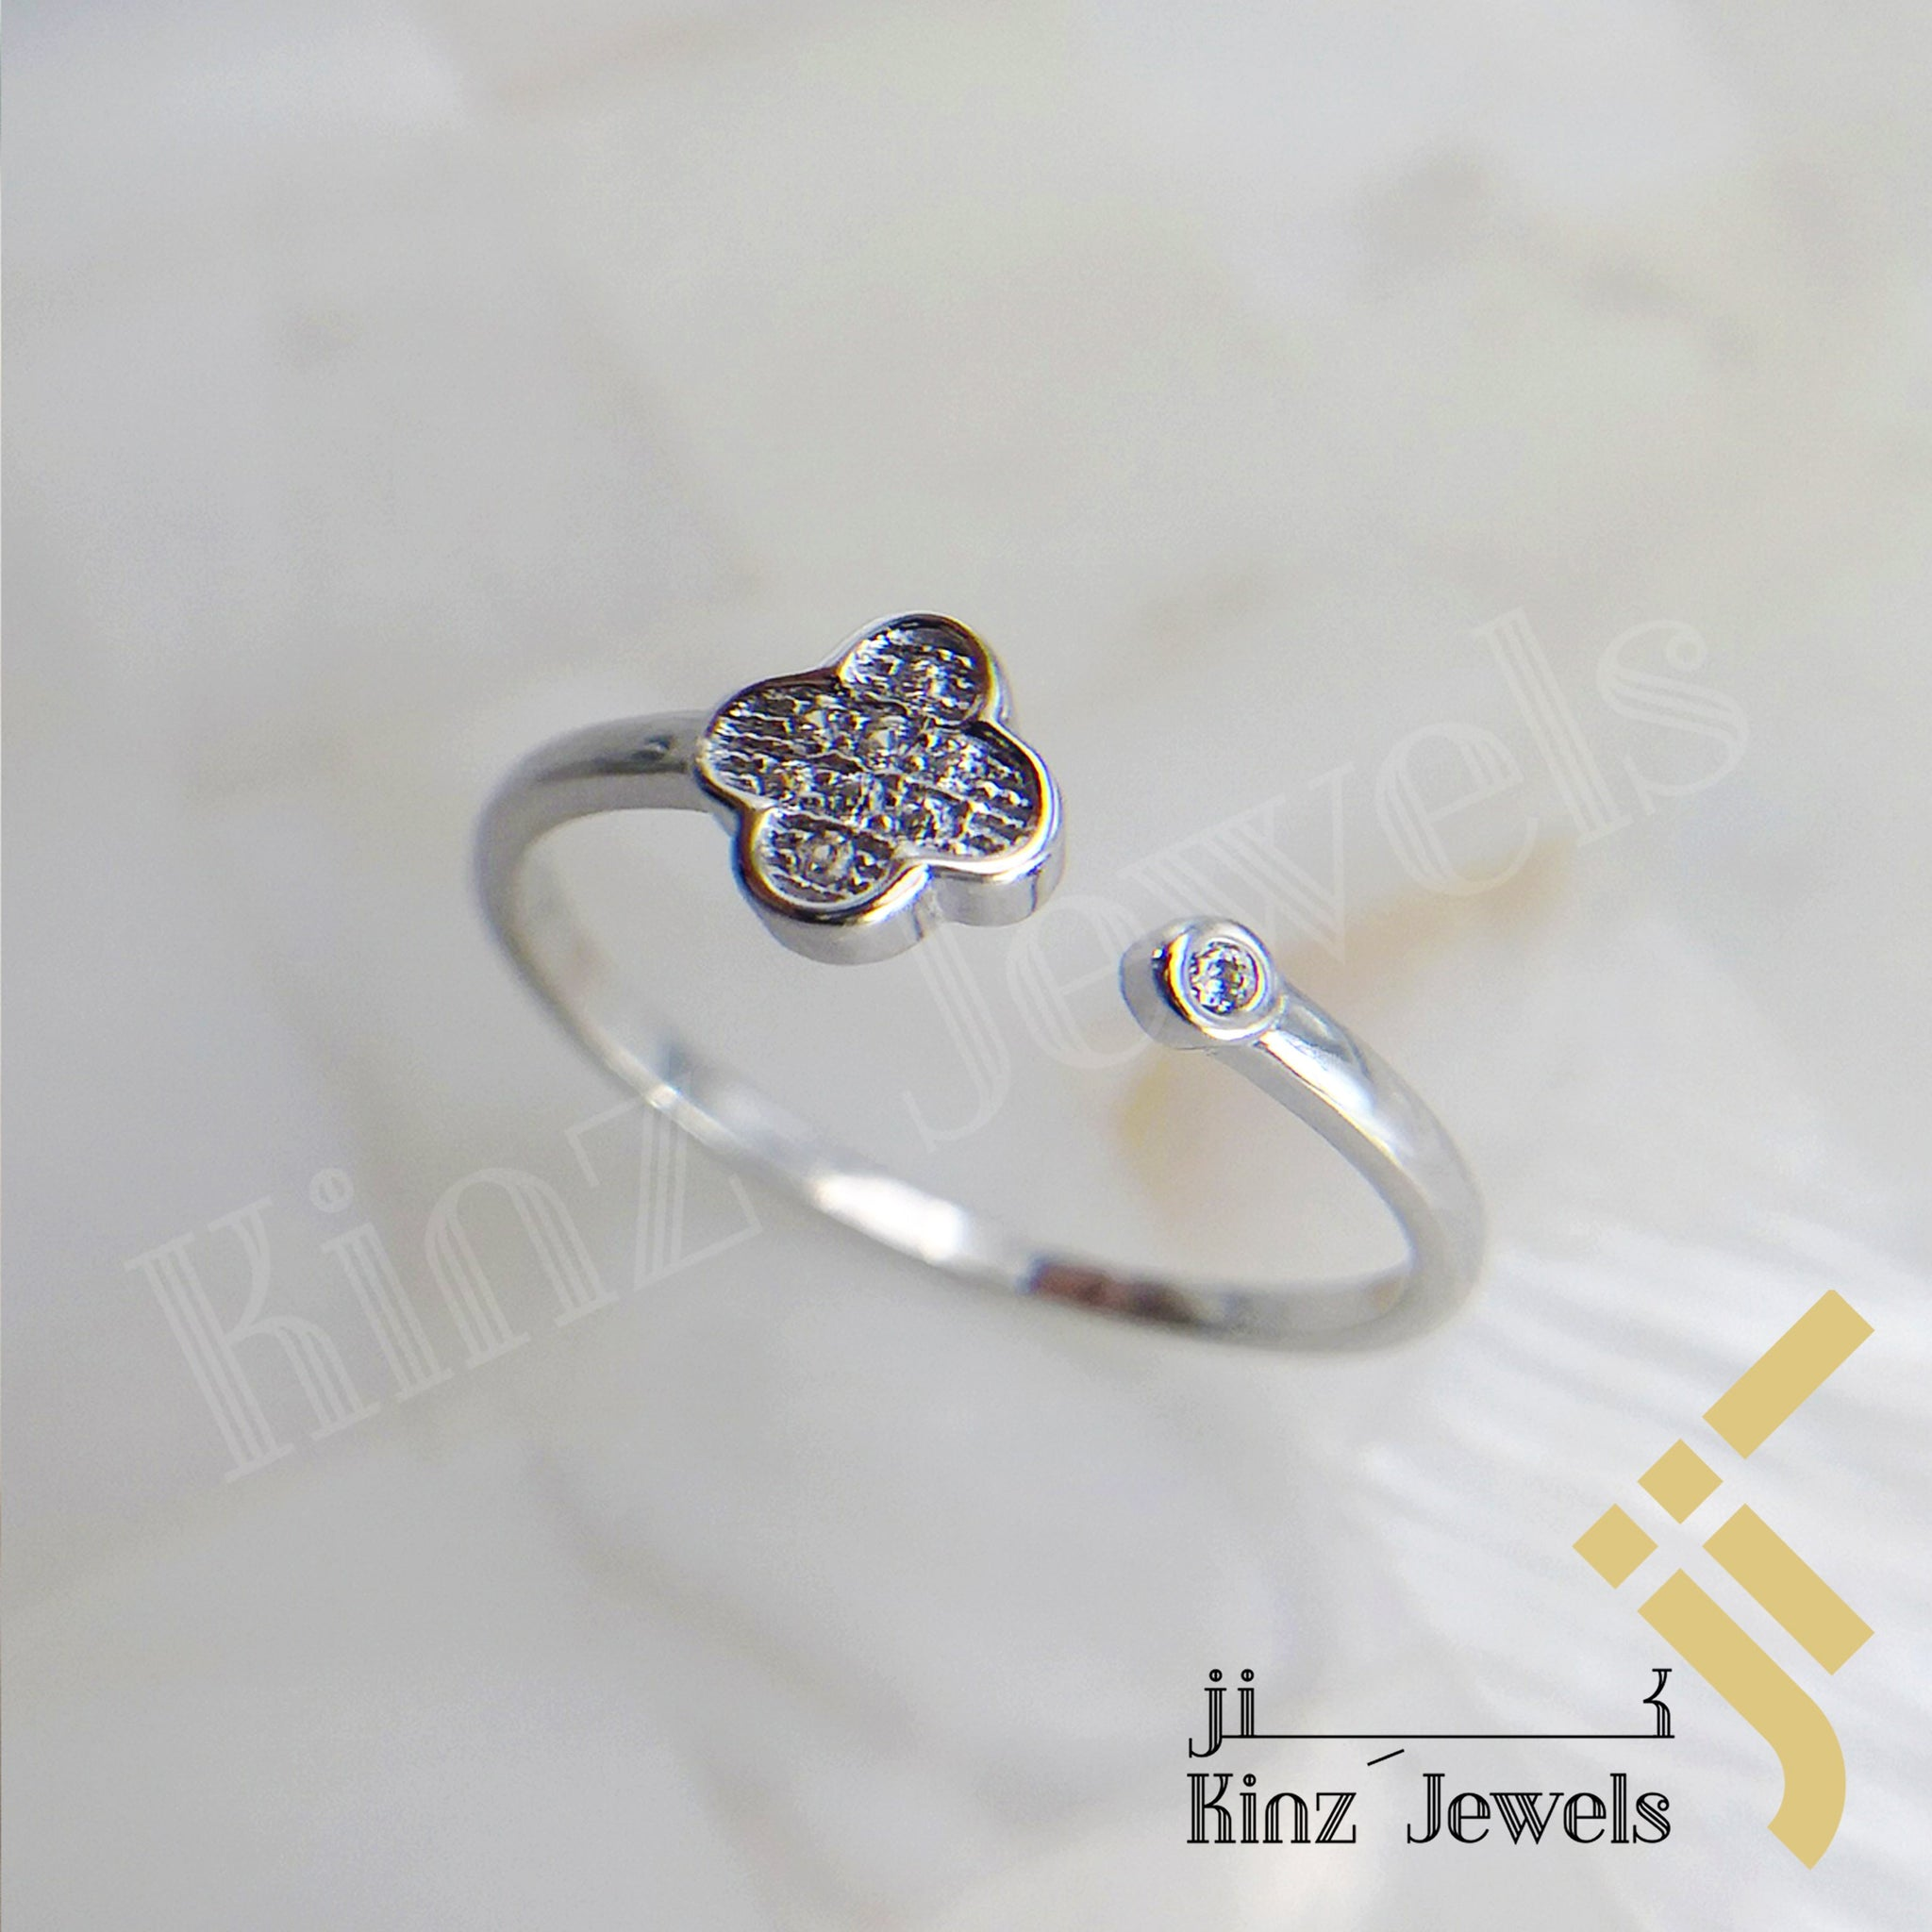 kinzjewels - Sterling Silver Free Size Simple Flower Rhodium Vermeil Ring